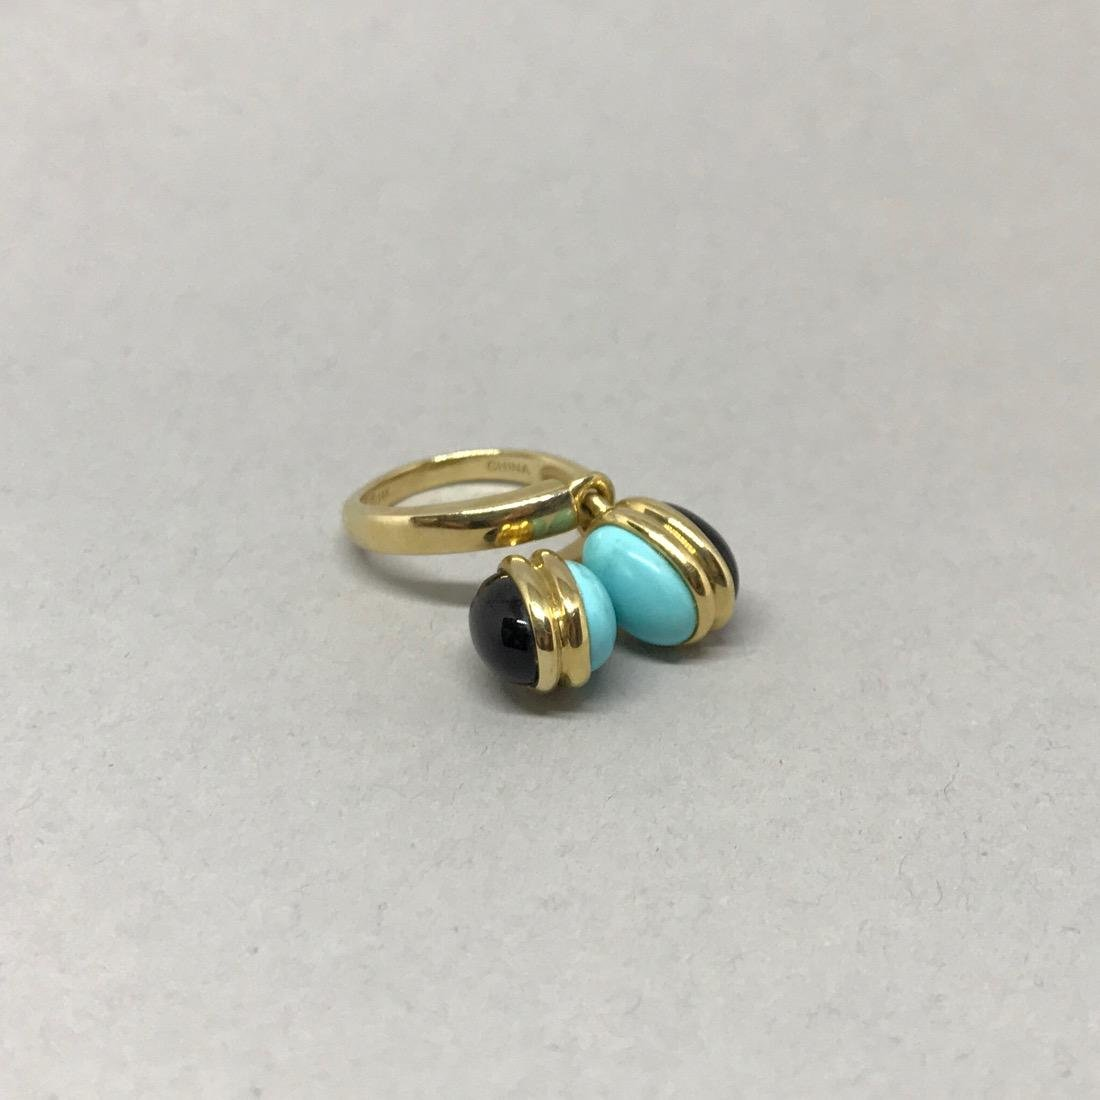 14Kt Gold Ring with Onyx & Turquoise - 2